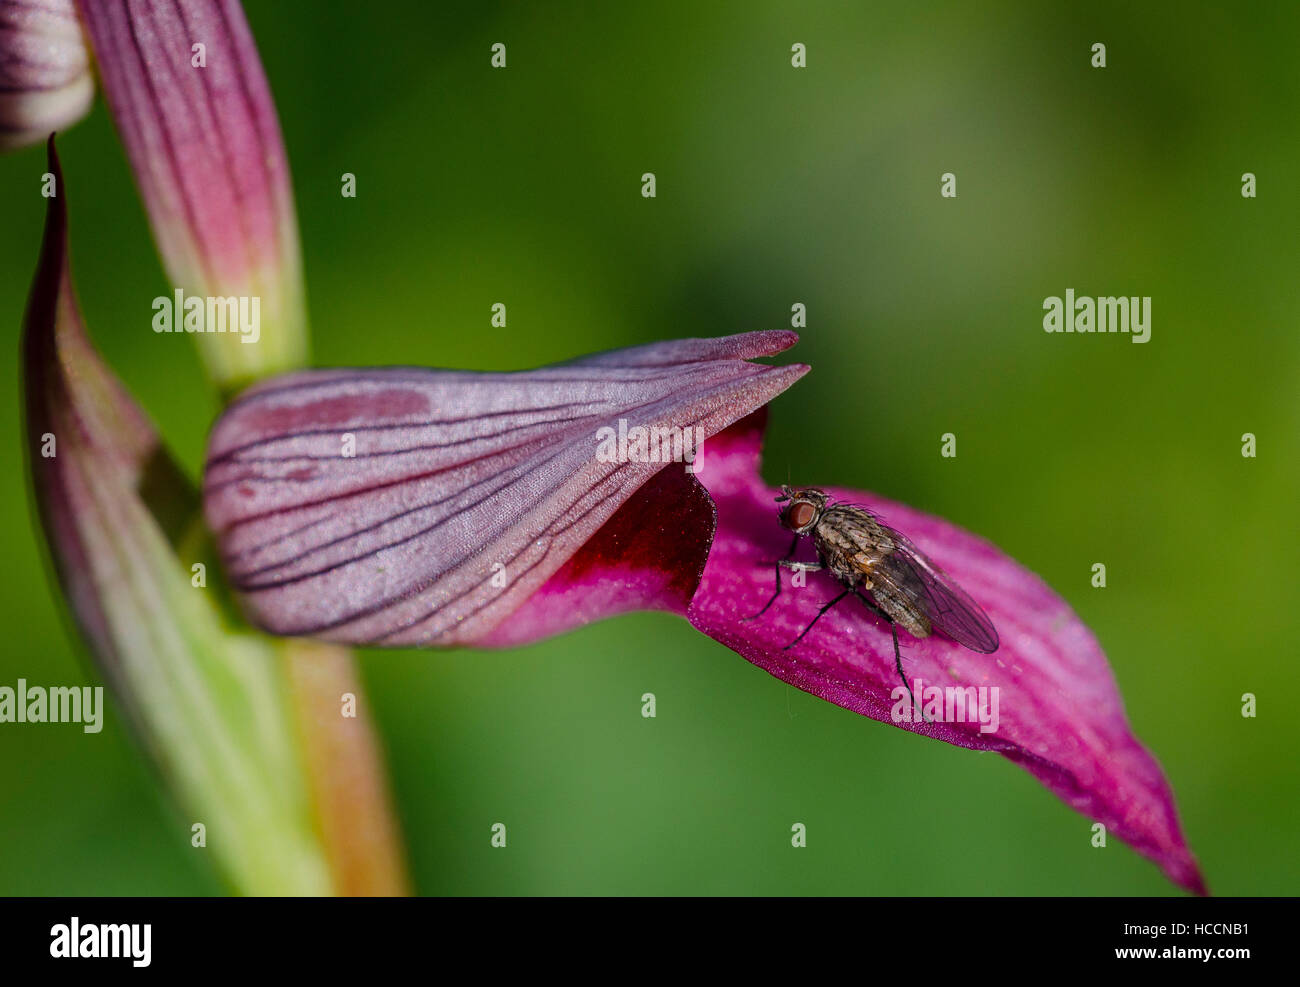 A fly on the labellum (or lip) of an orchis serapias lingua. - Stock Image